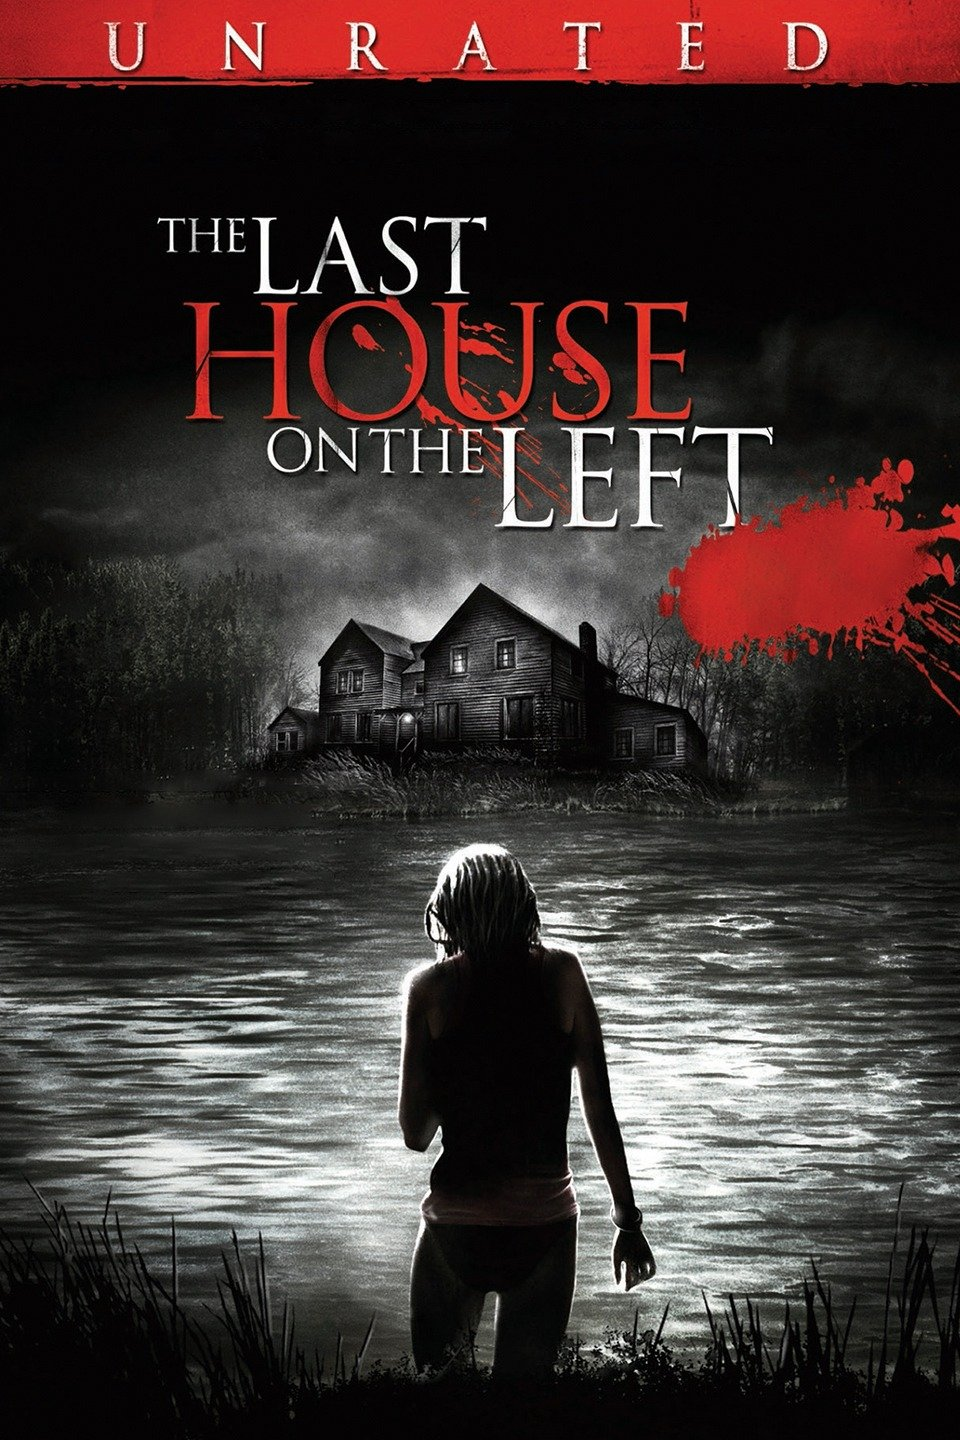 The Last House on the Left-The Last House on the Left